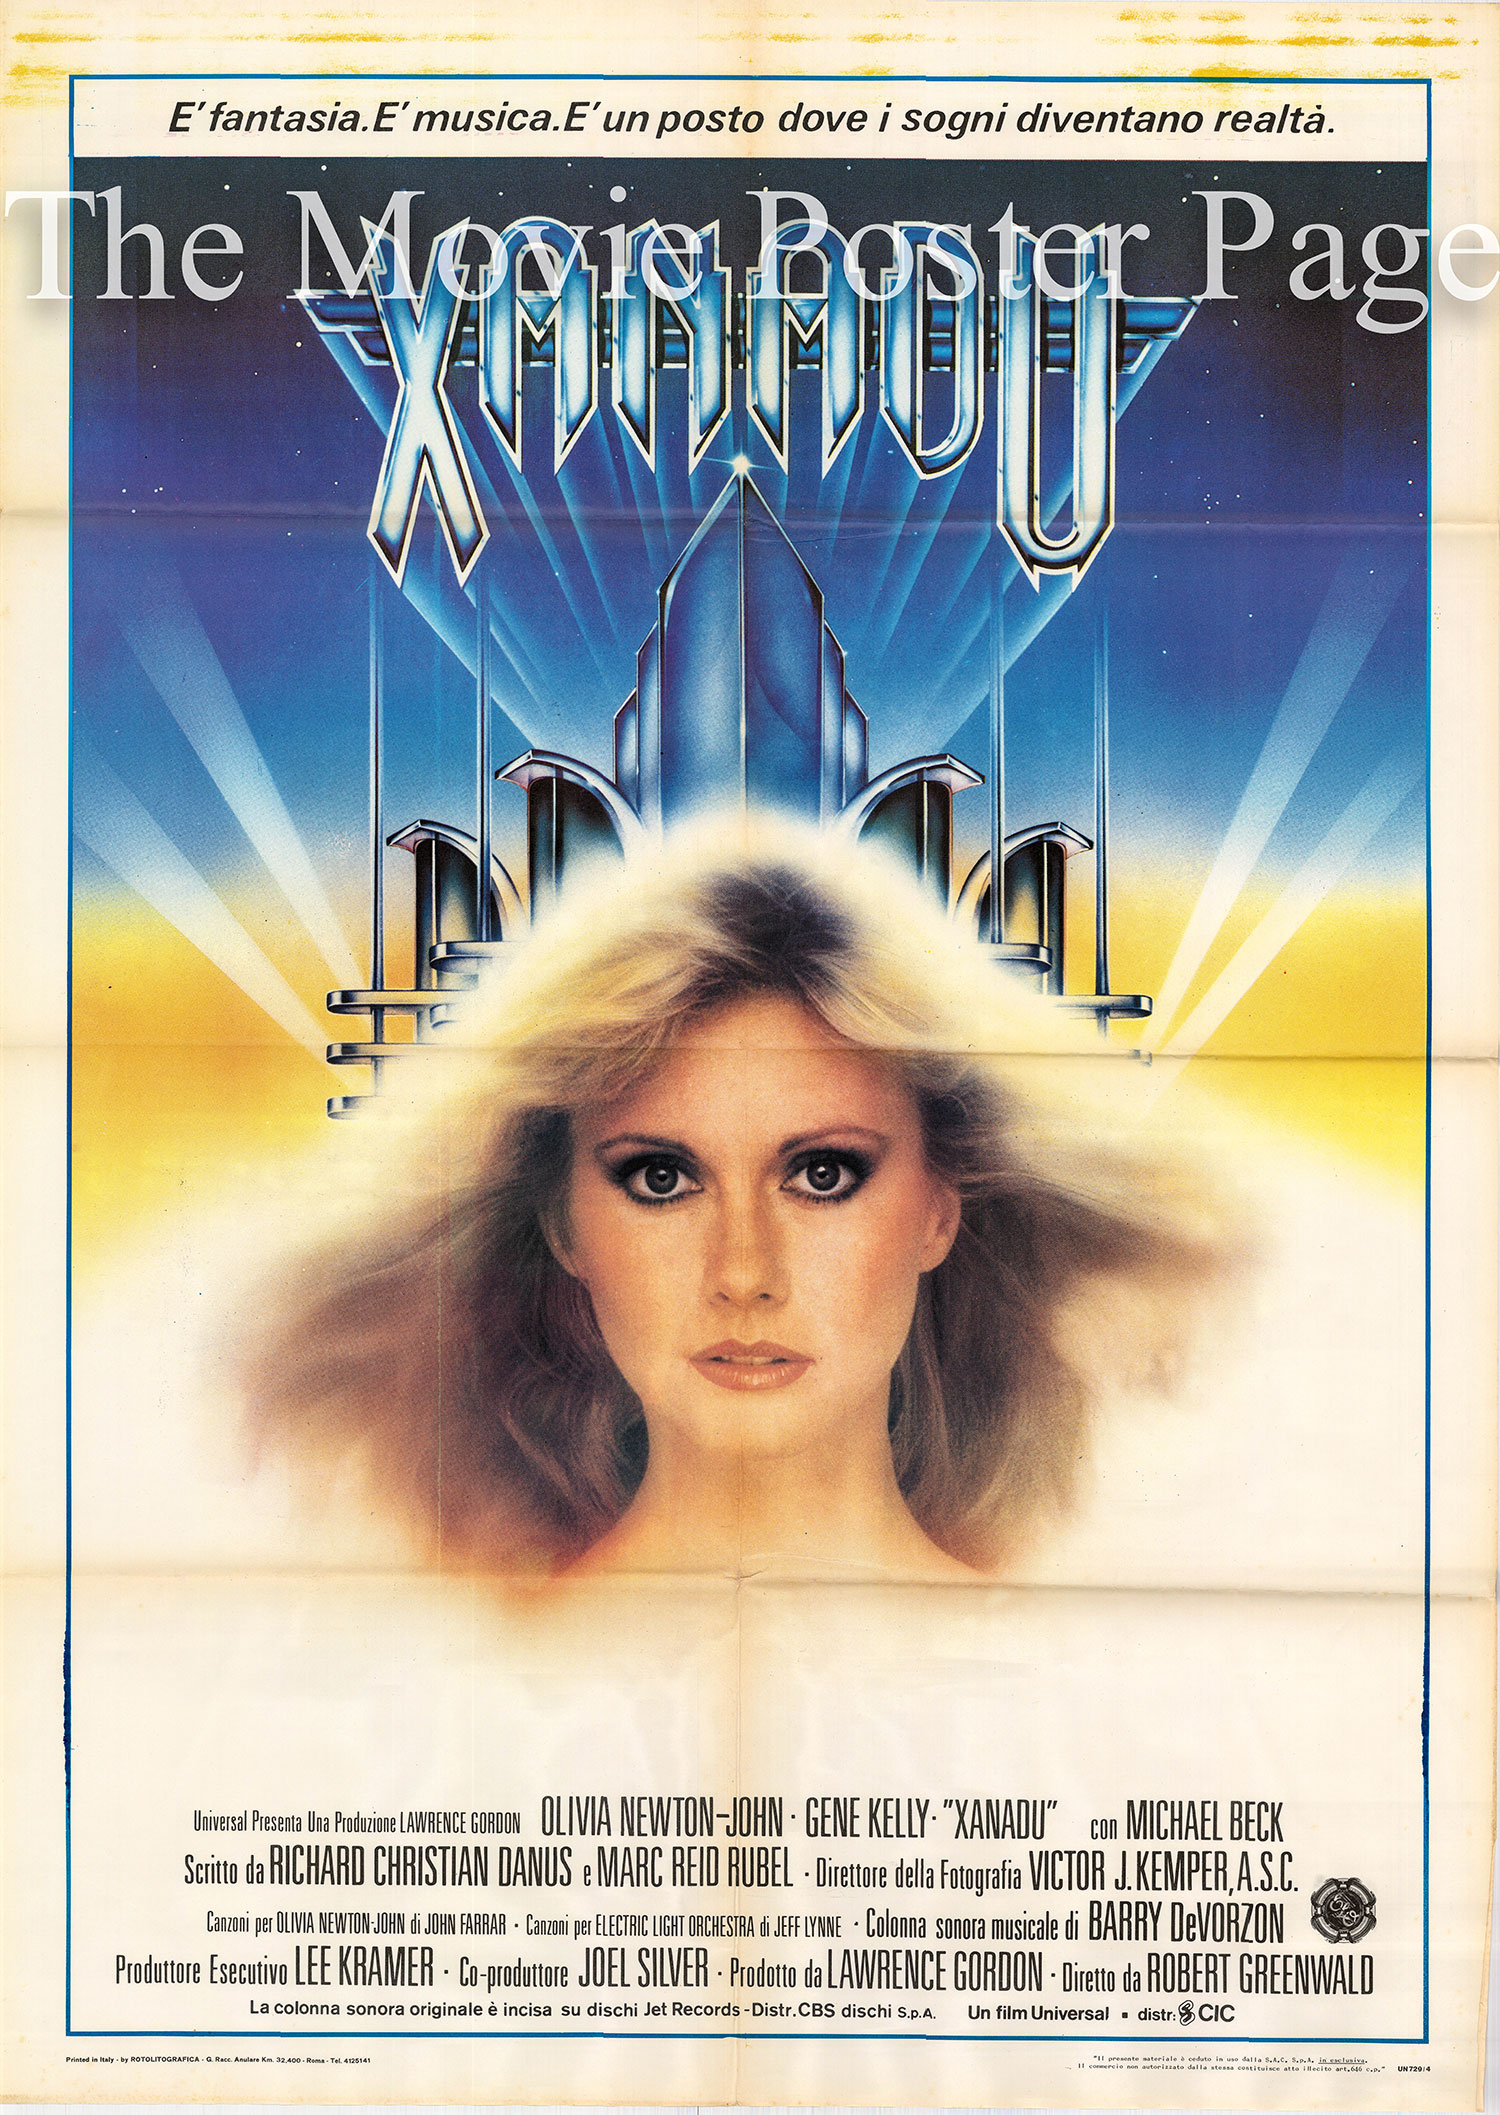 Pictured is an Italian two-sheet promotional poster for the 1980 Robert Greewald film Xanadu starring Olivia Newton-John.